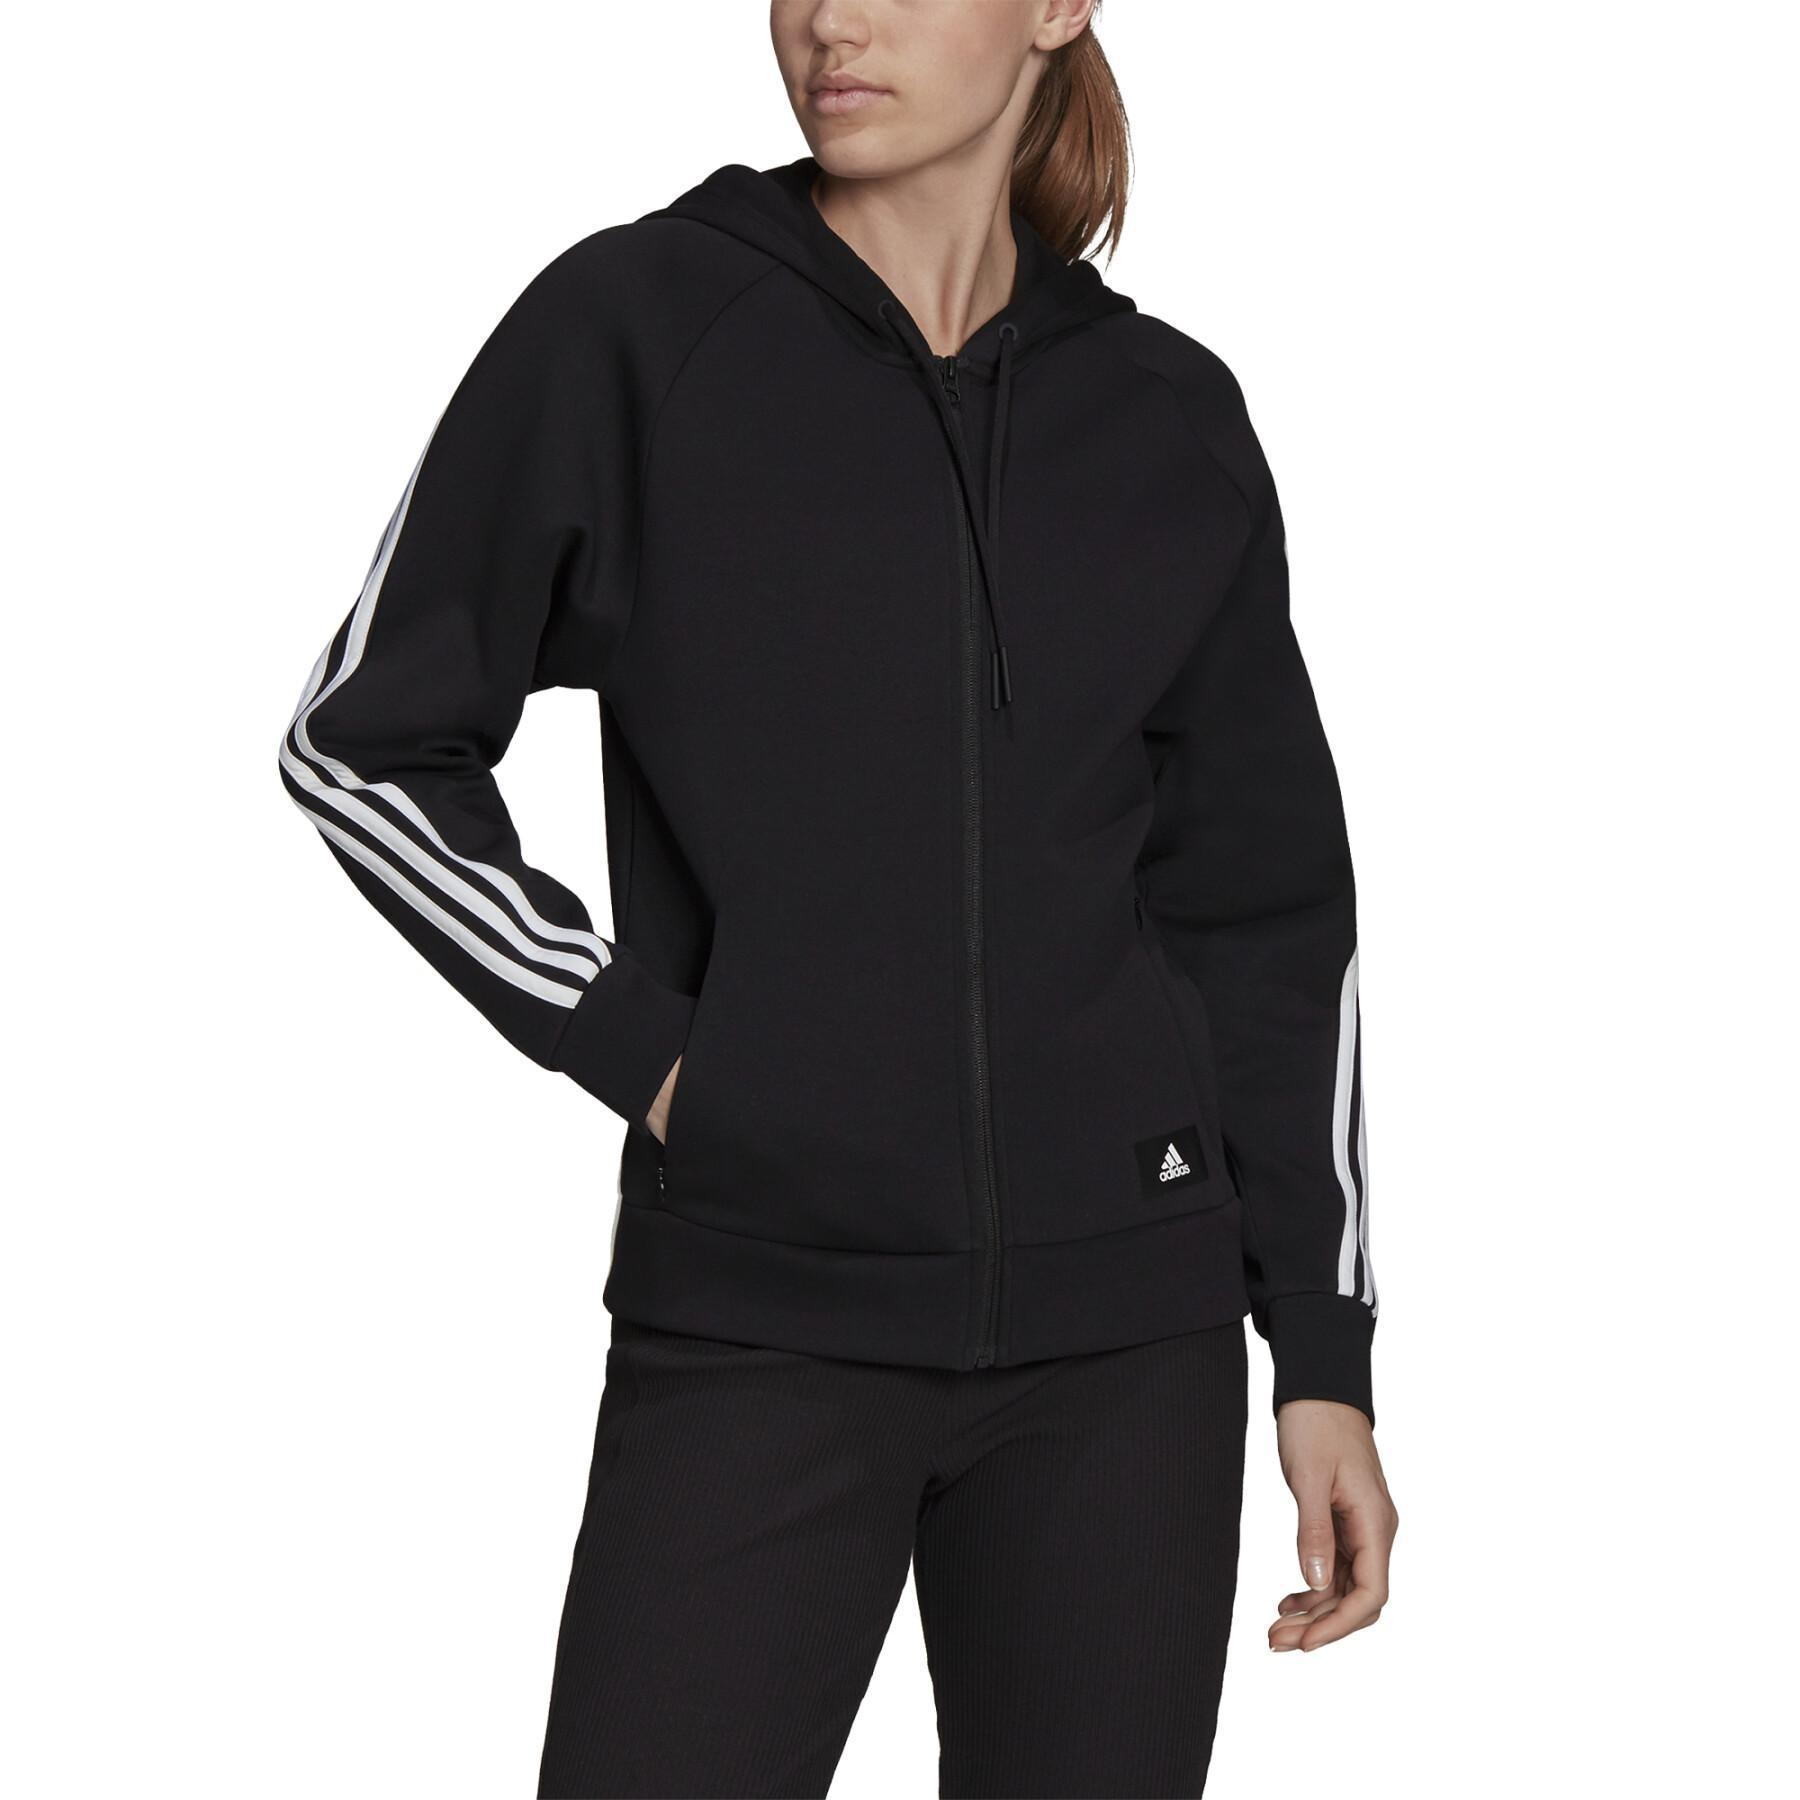 Future Icons 3-Stripes Hooded Track Top XS